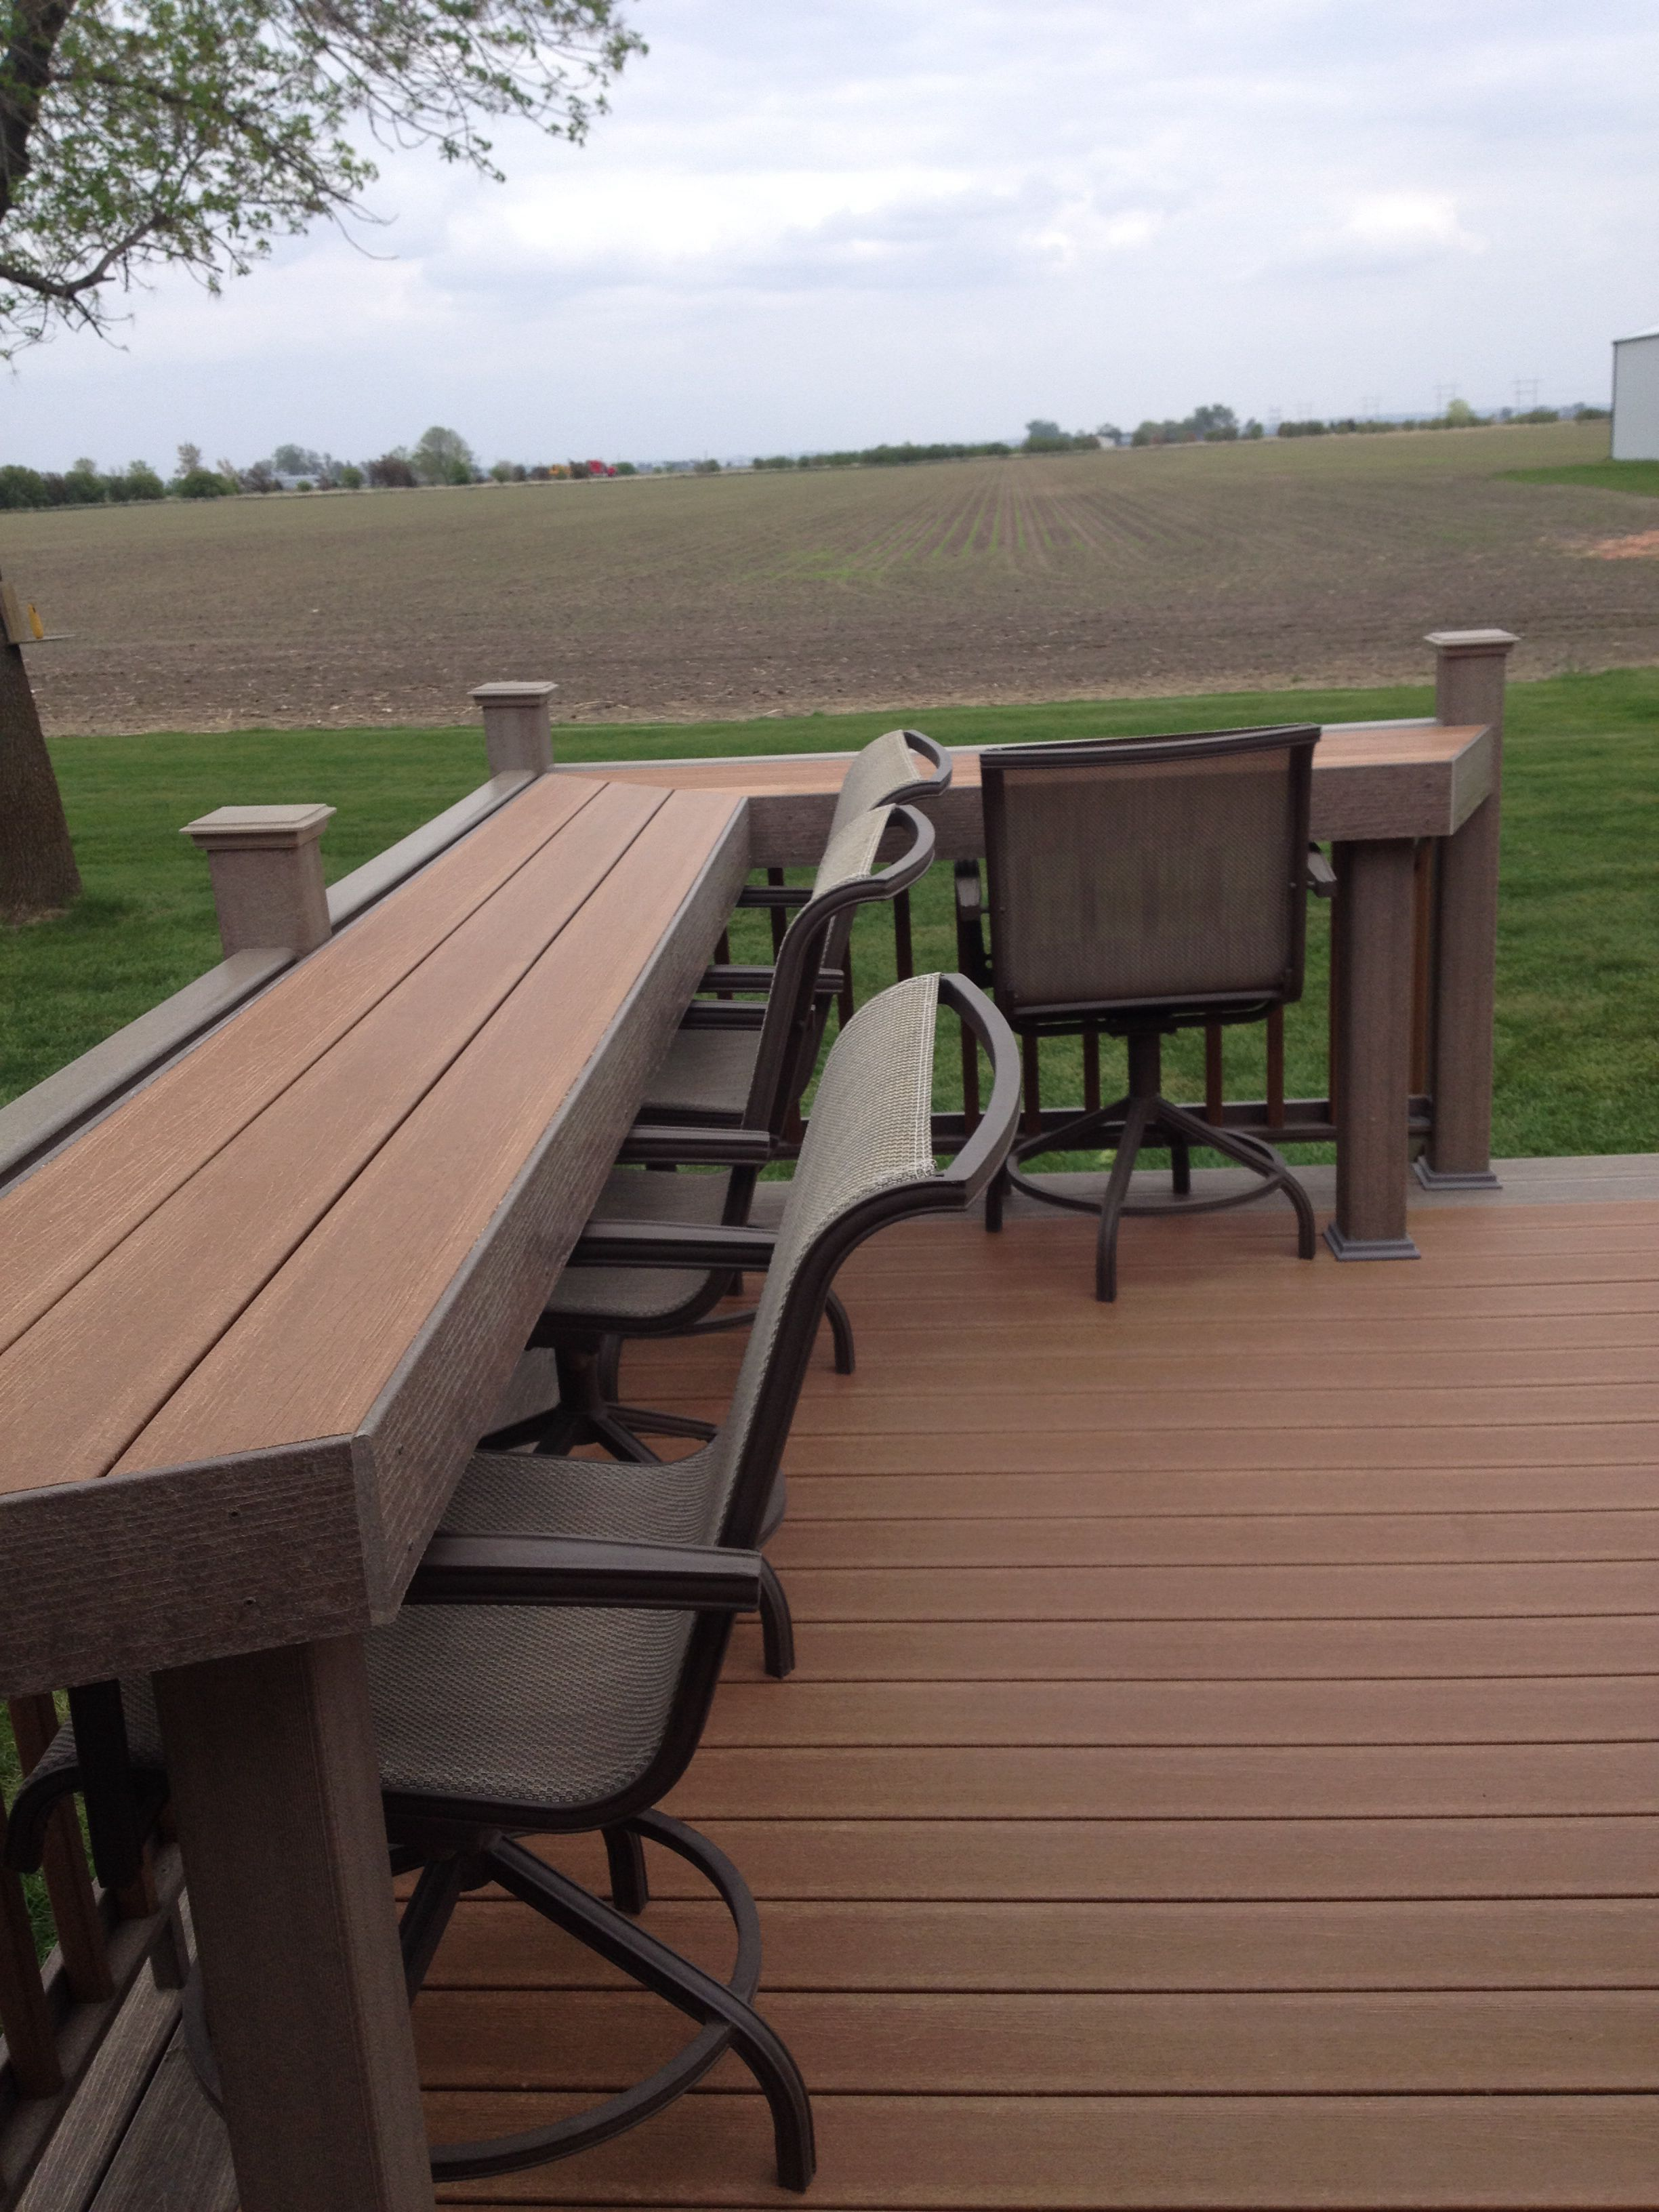 Our new composite deck and it has